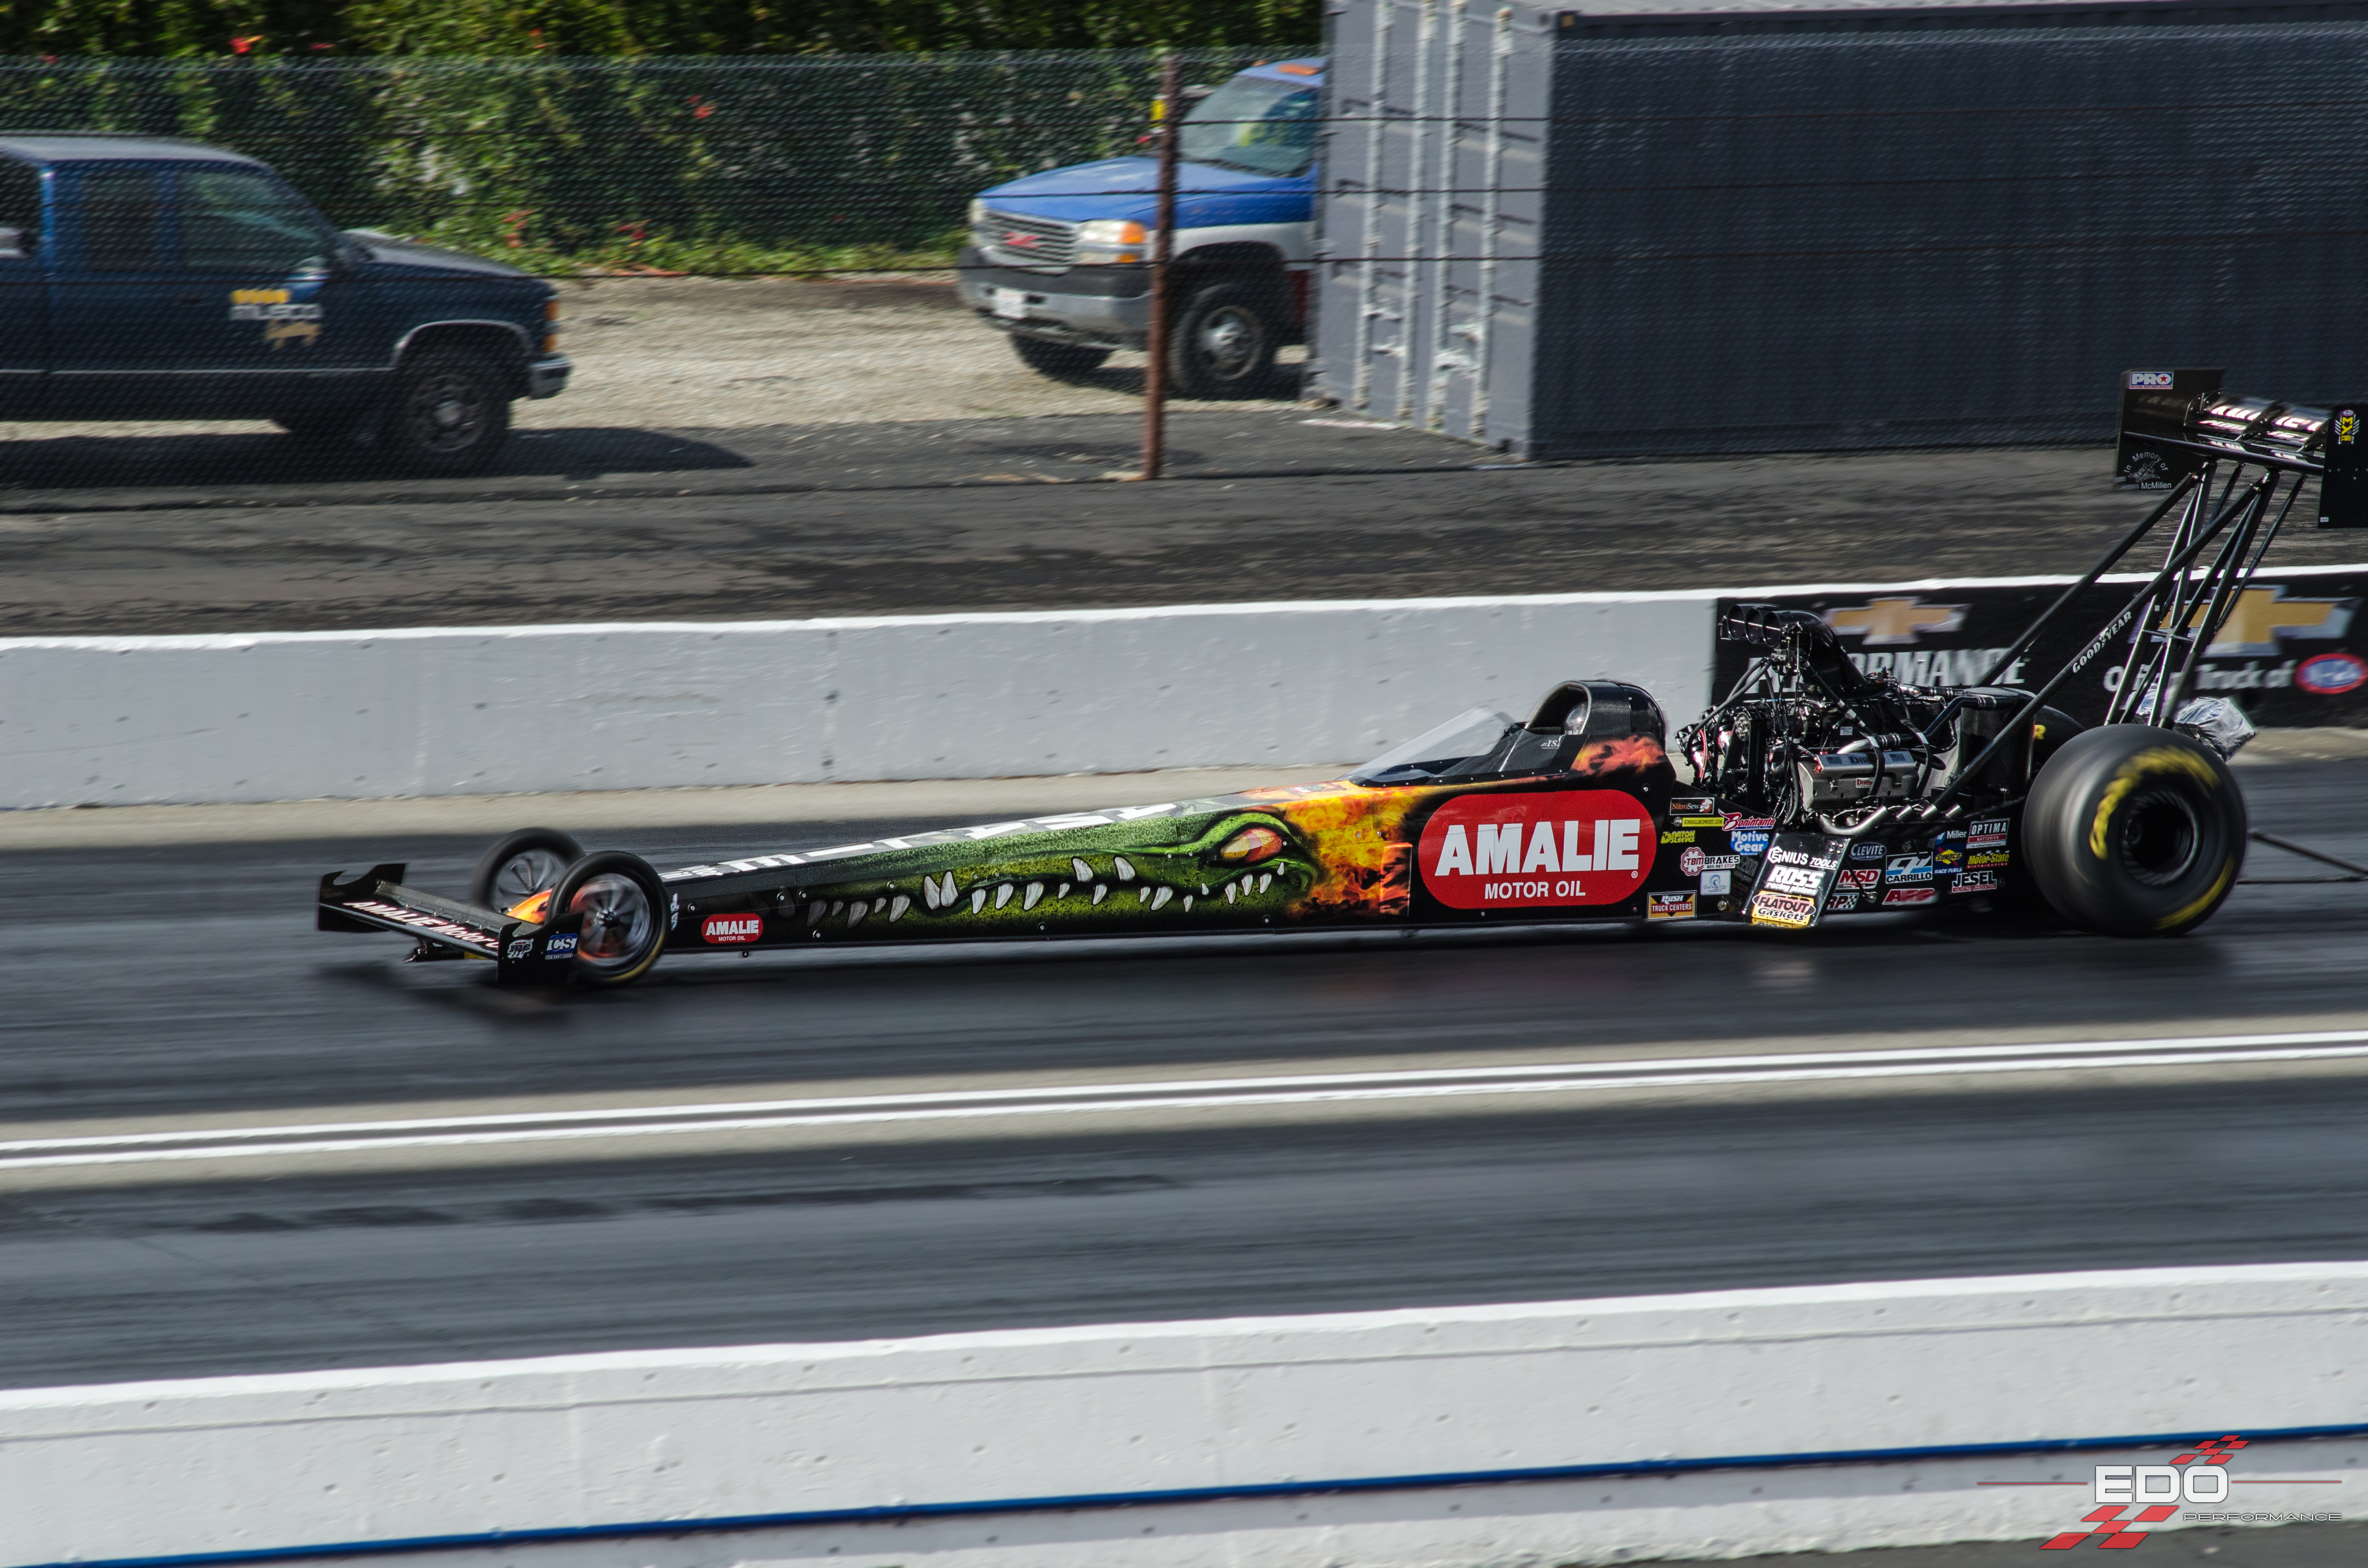 NHRA Winternationals at Auto Club Raceway Pomona 2017